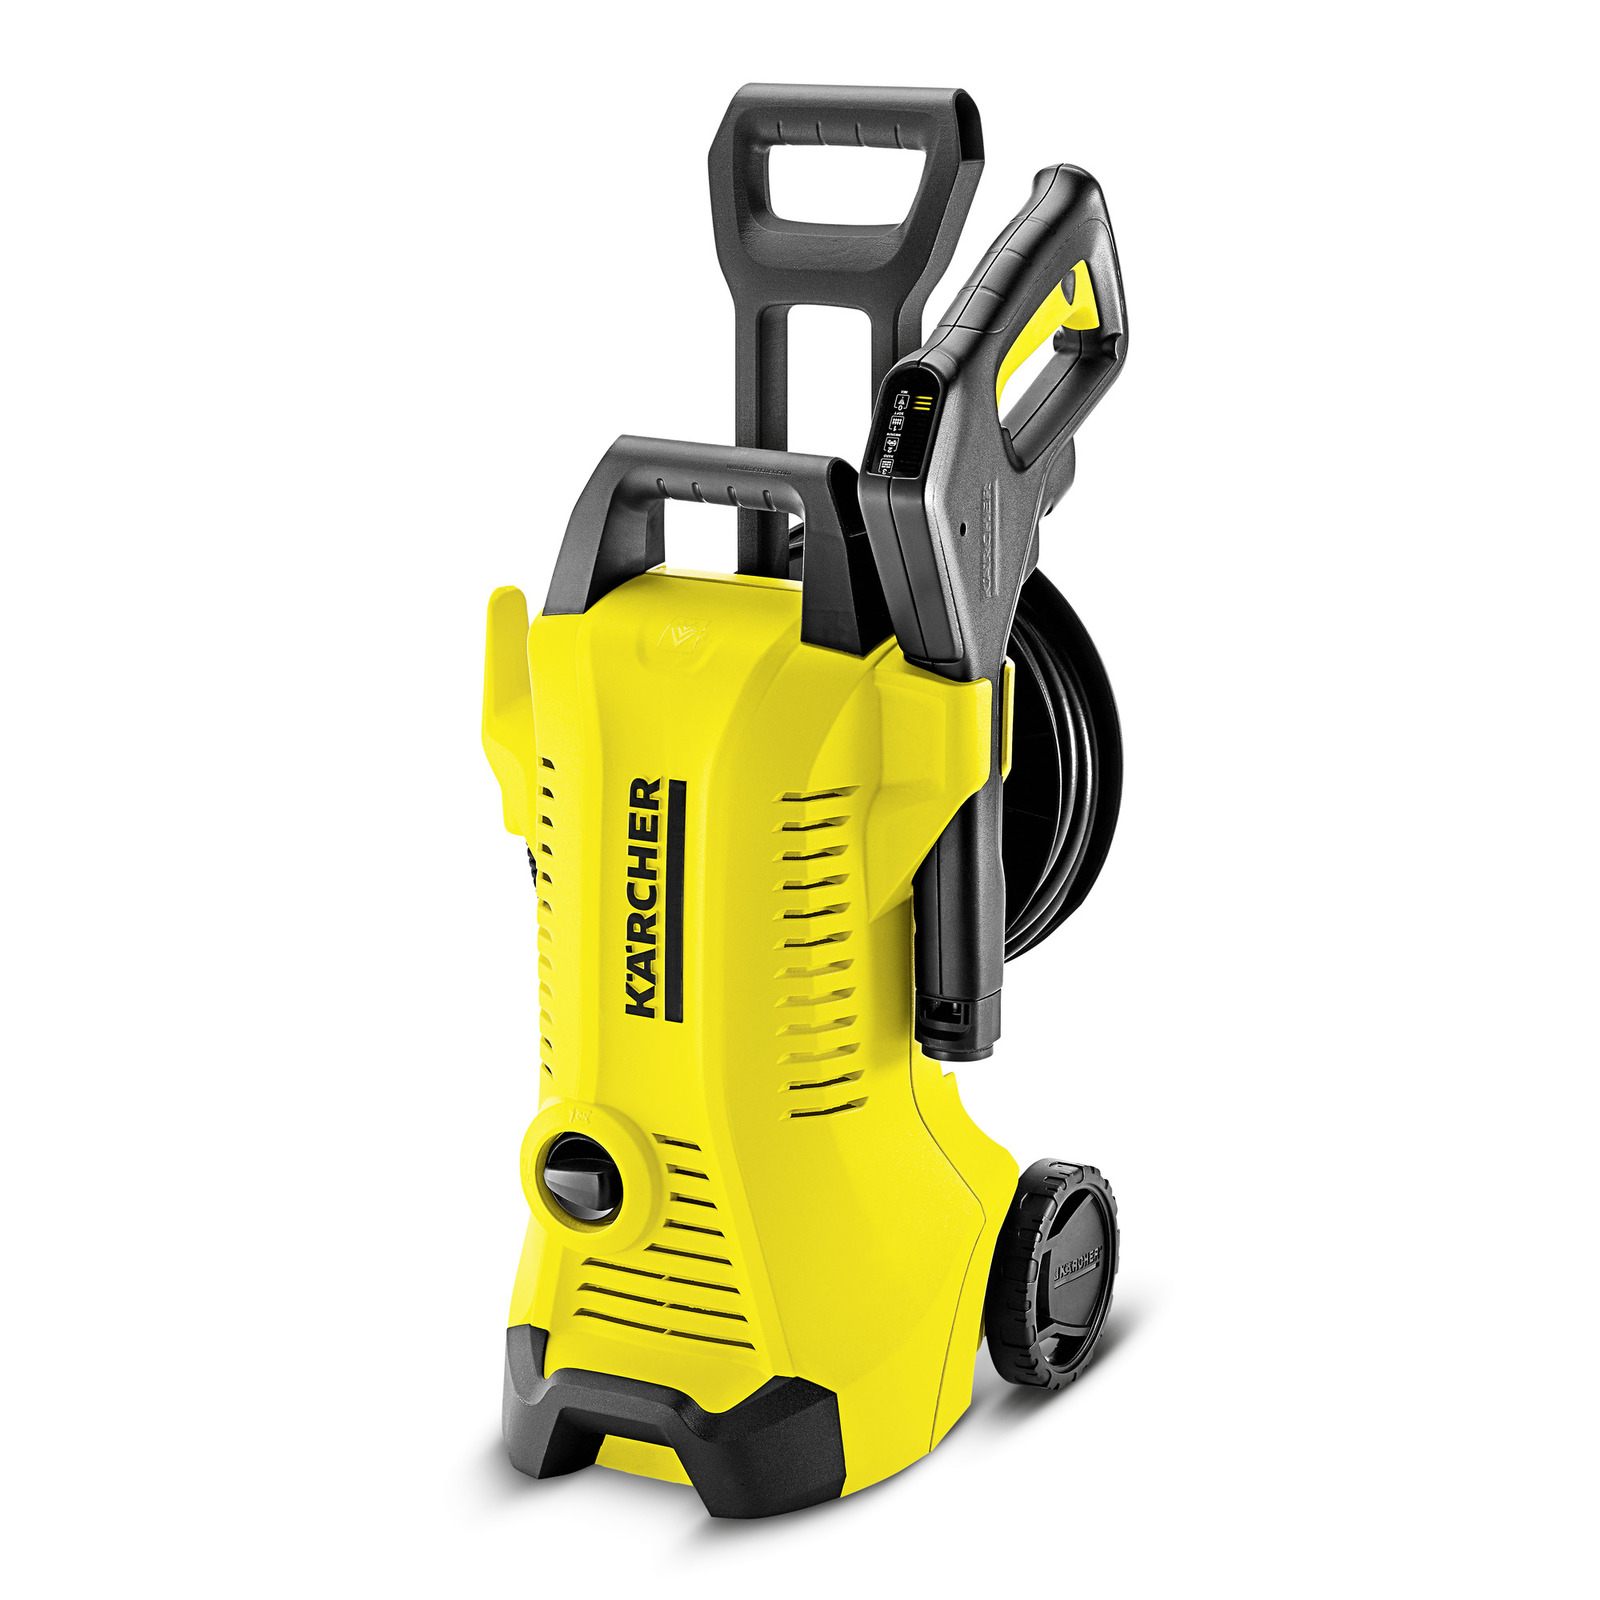 K 3 premium full control k rcher international - Karcher k4 premium full control ...